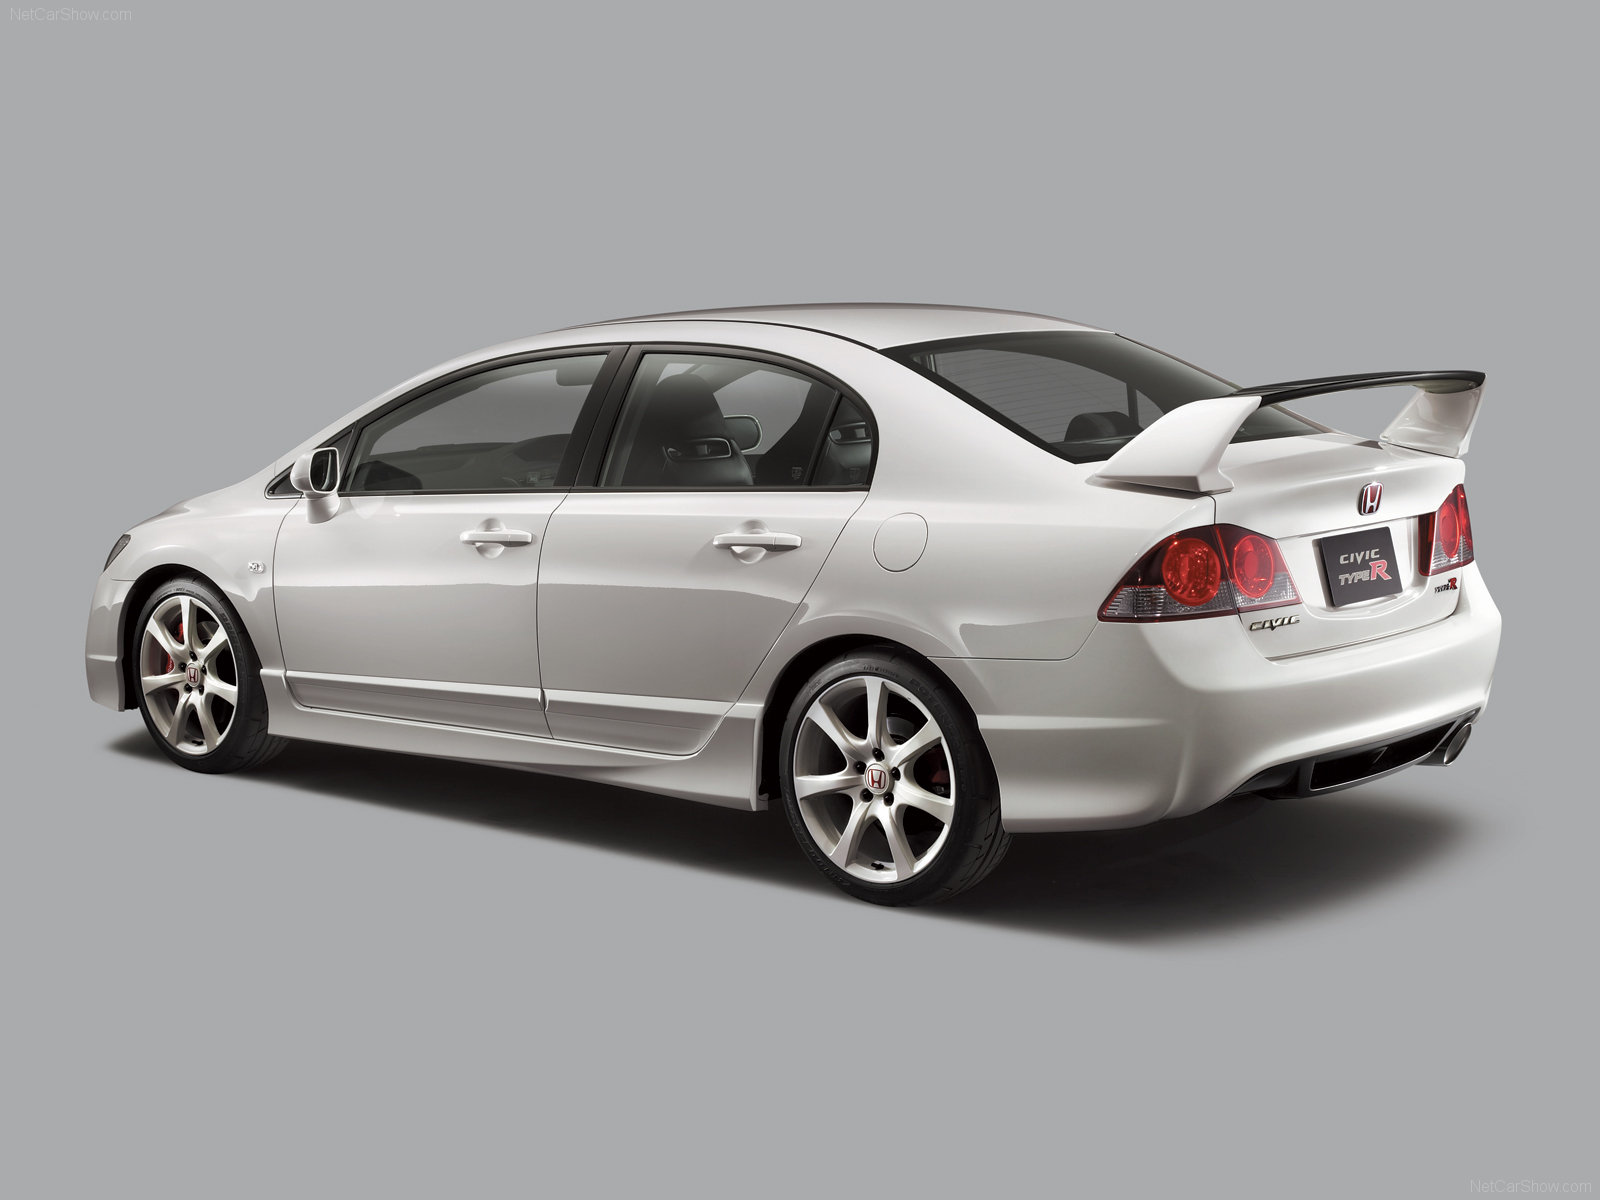 Honda Civic Type-R Sedan photo 42713